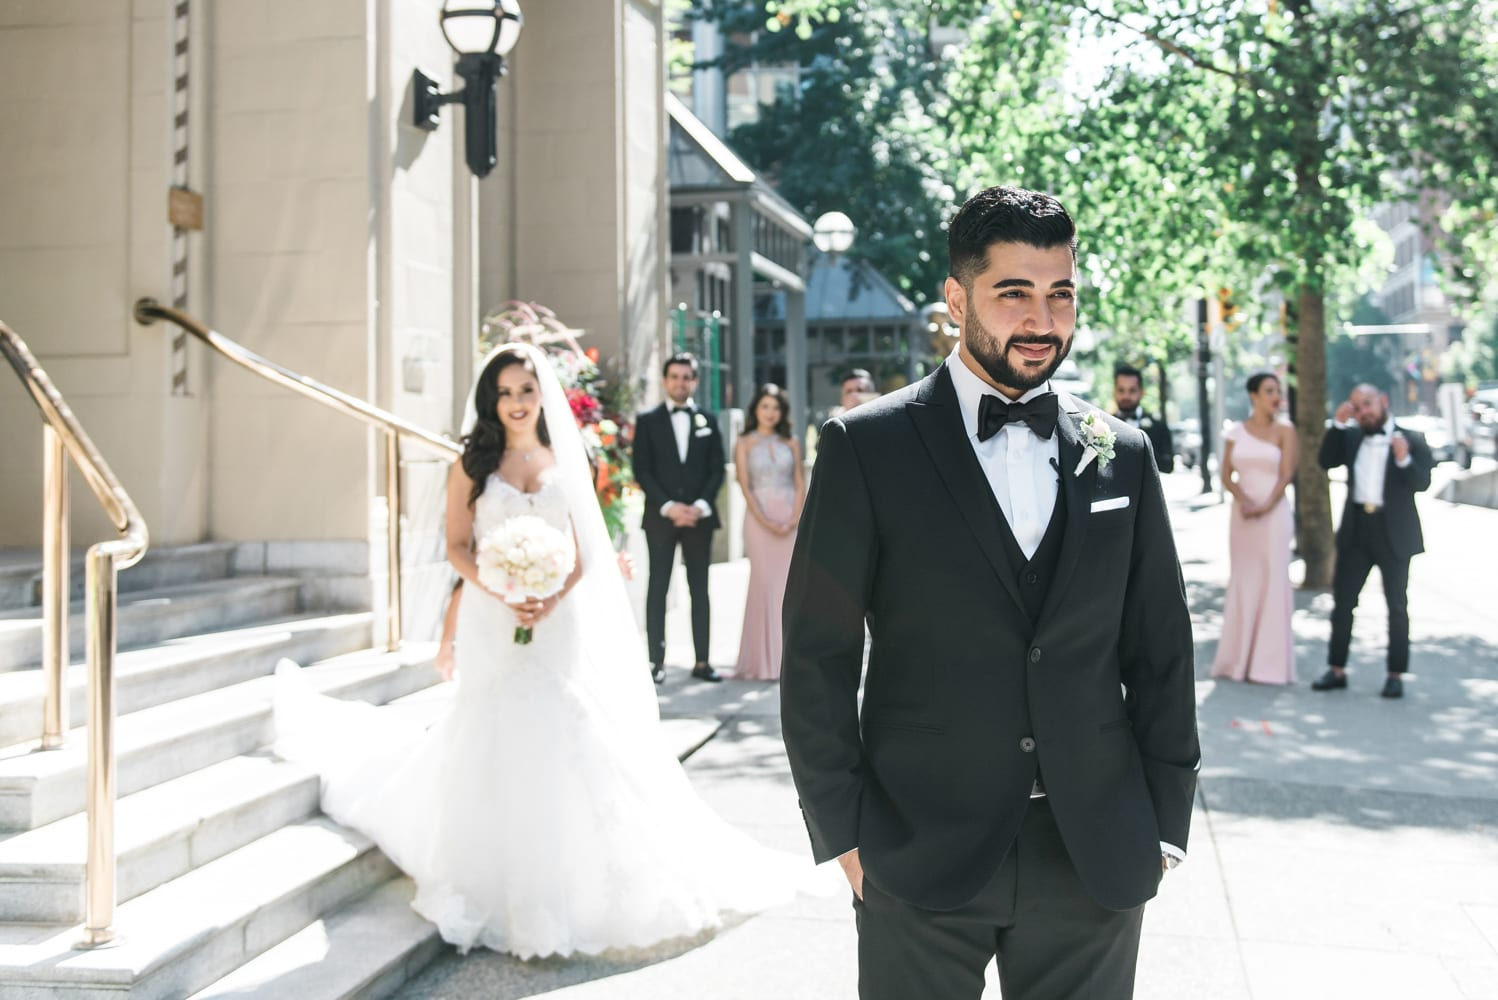 A Vintage Persian Wedding in Vancouver - Couple's first-look